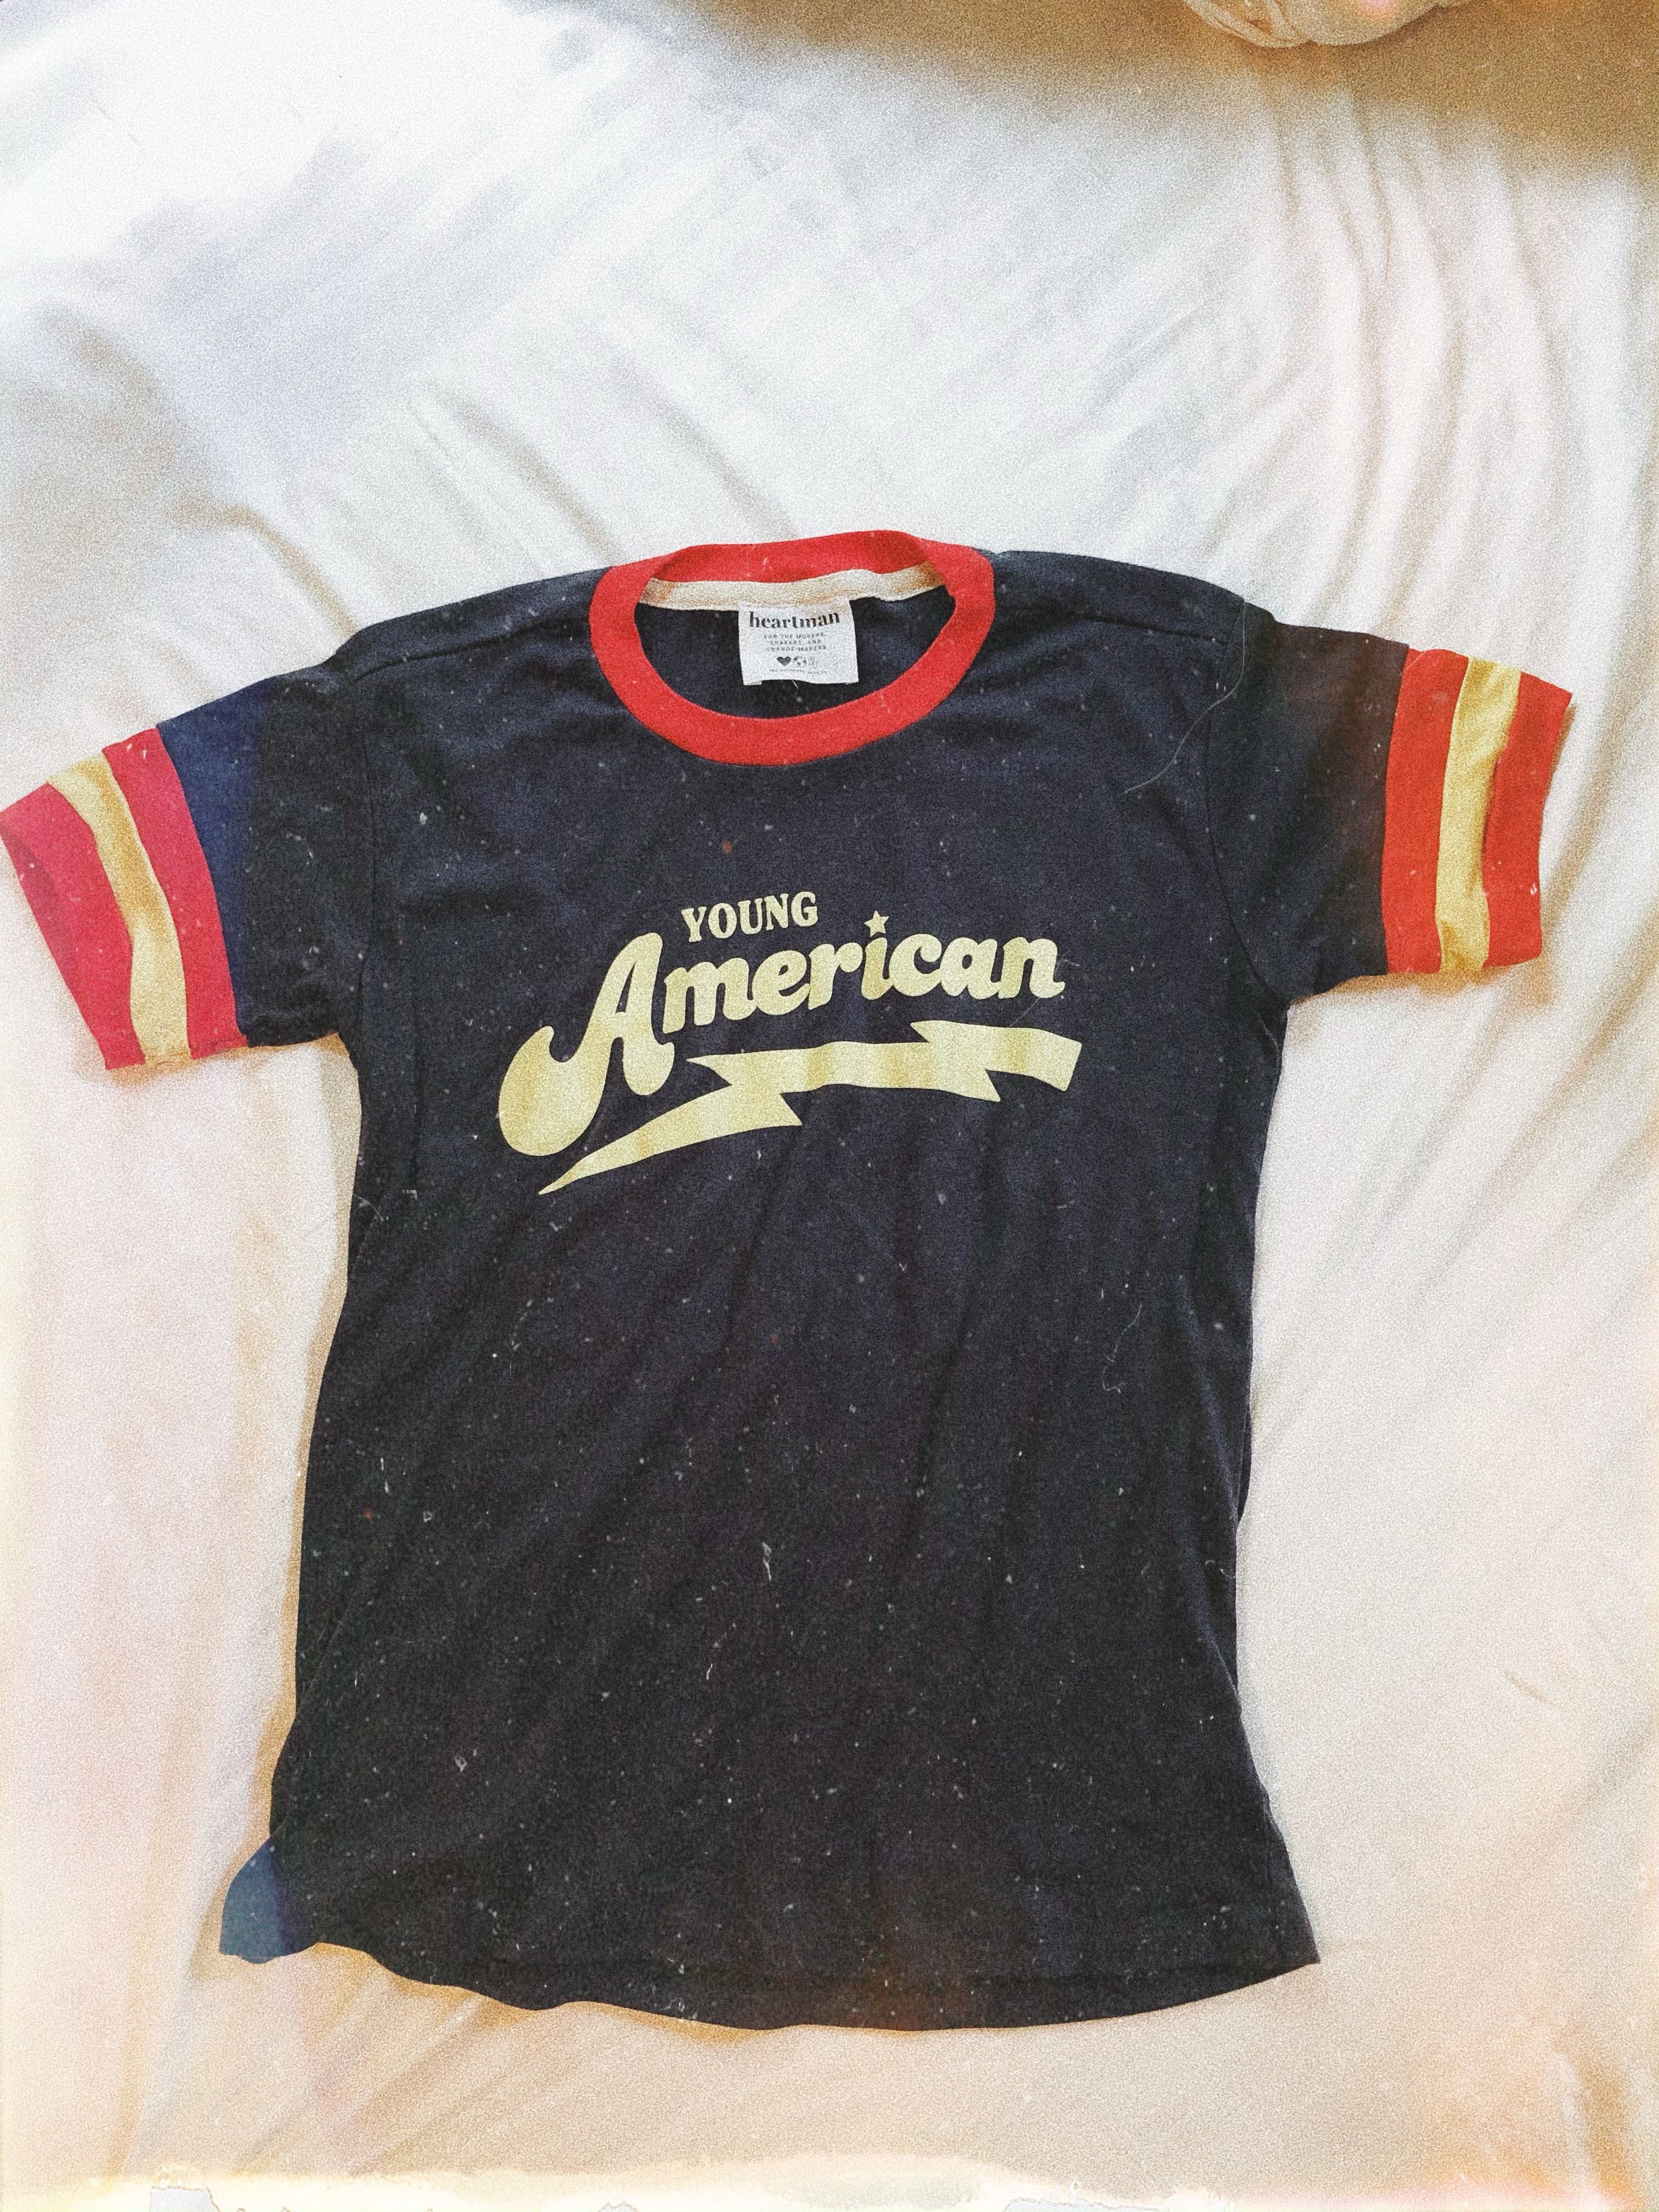 Young American Ringer Tee 70s T Shirts Tee Design Inspiration Retro Shirts